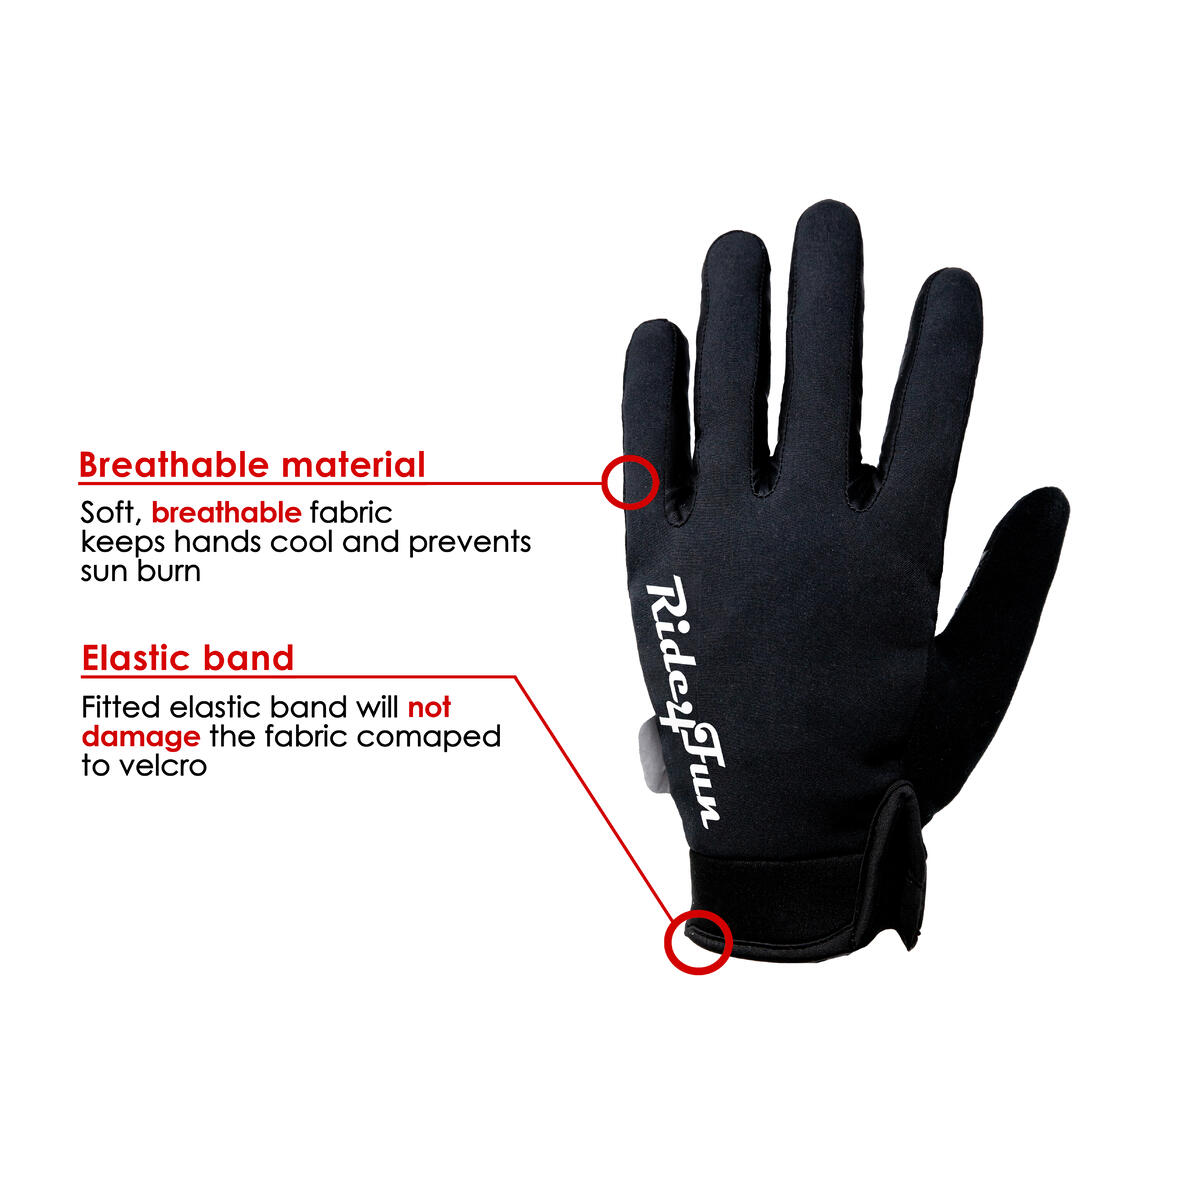 Full Finger Biking Gloves for Men. Cold weather Bicycle Gloves. Mens Neoprene Gloves. Warm Winter Mountain Bike Gloves for Men. Gel Shock-Absorbing Riding Gloves Black Pad for Women. Road Bike Gloves